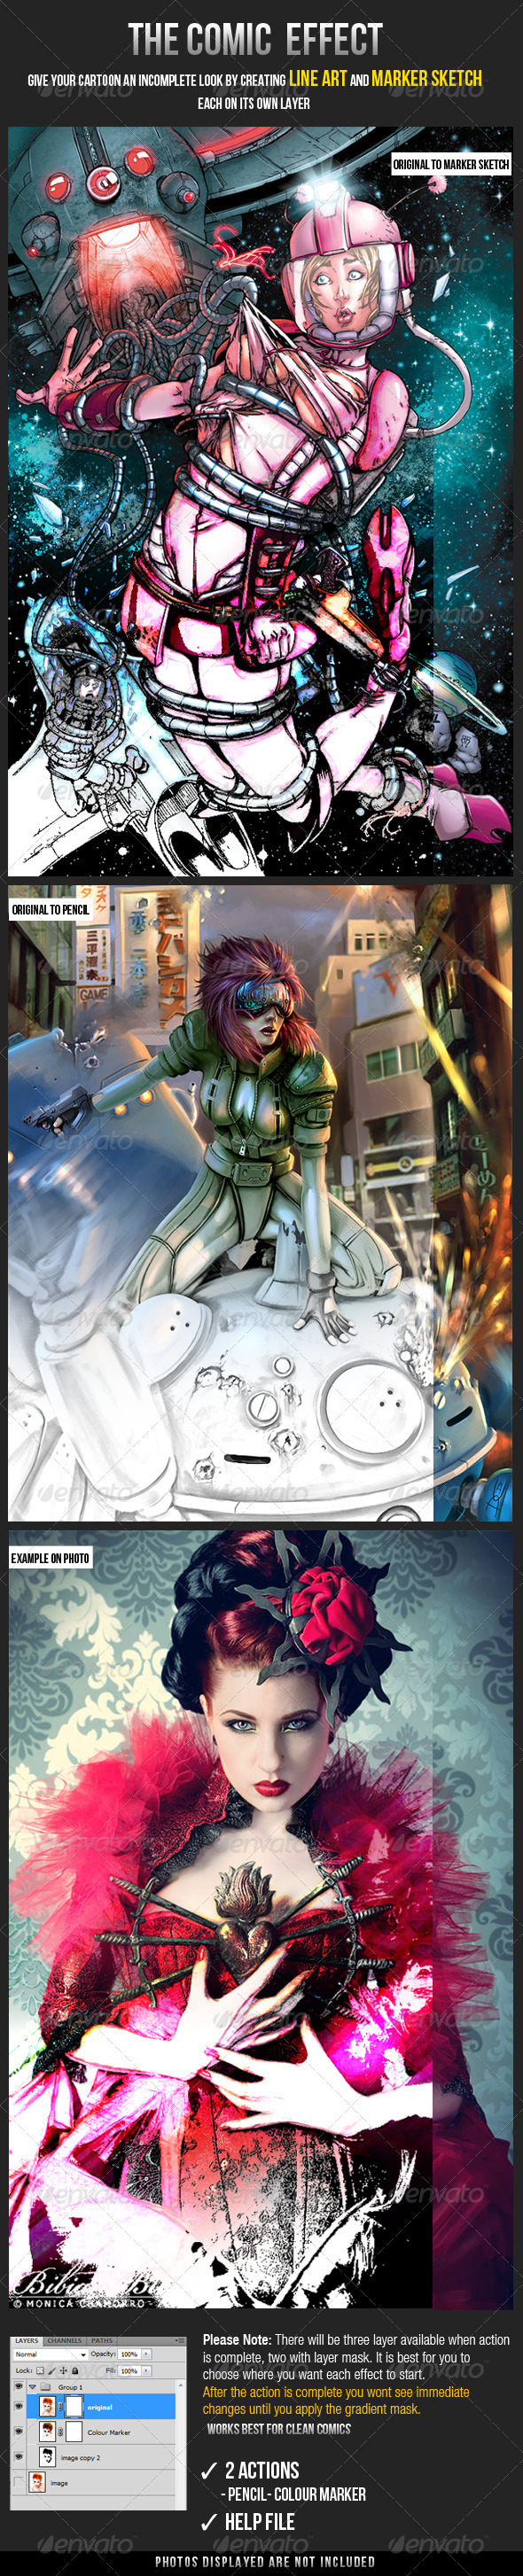 GraphicRiver The Comic Effect 3097503